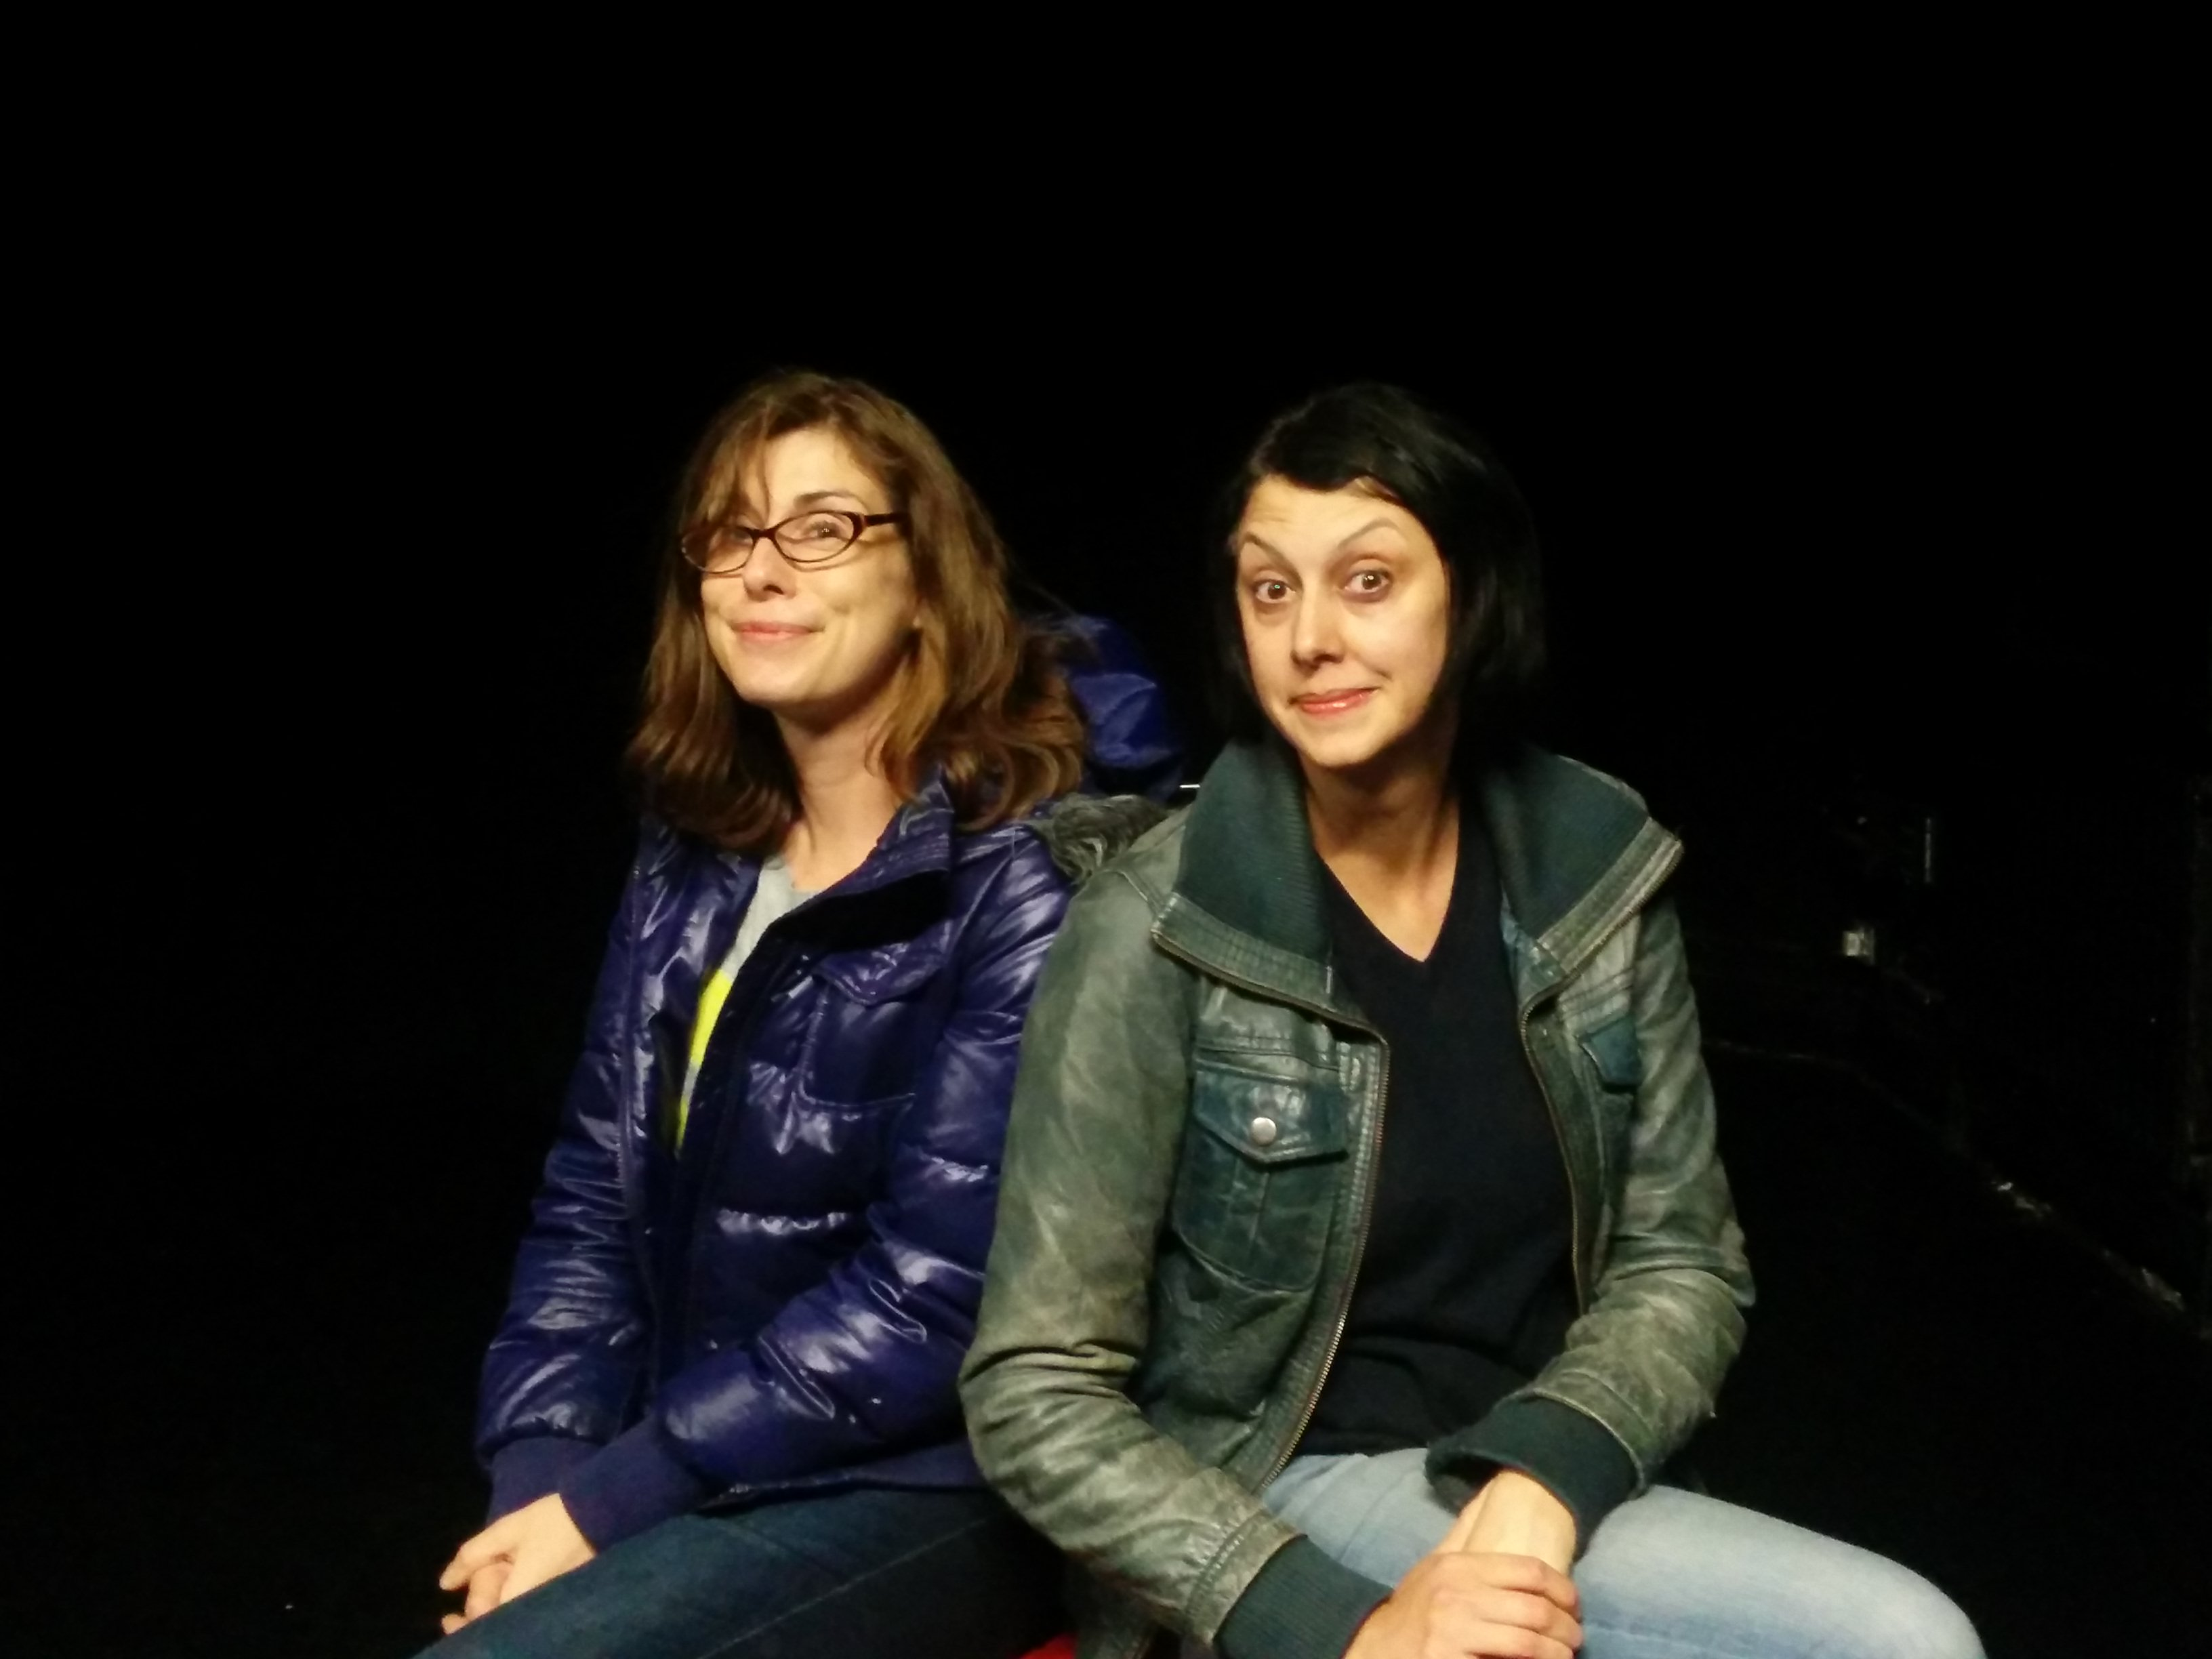 EP33 – Zena Barrie and Michelle Flower from the Camden Fringe